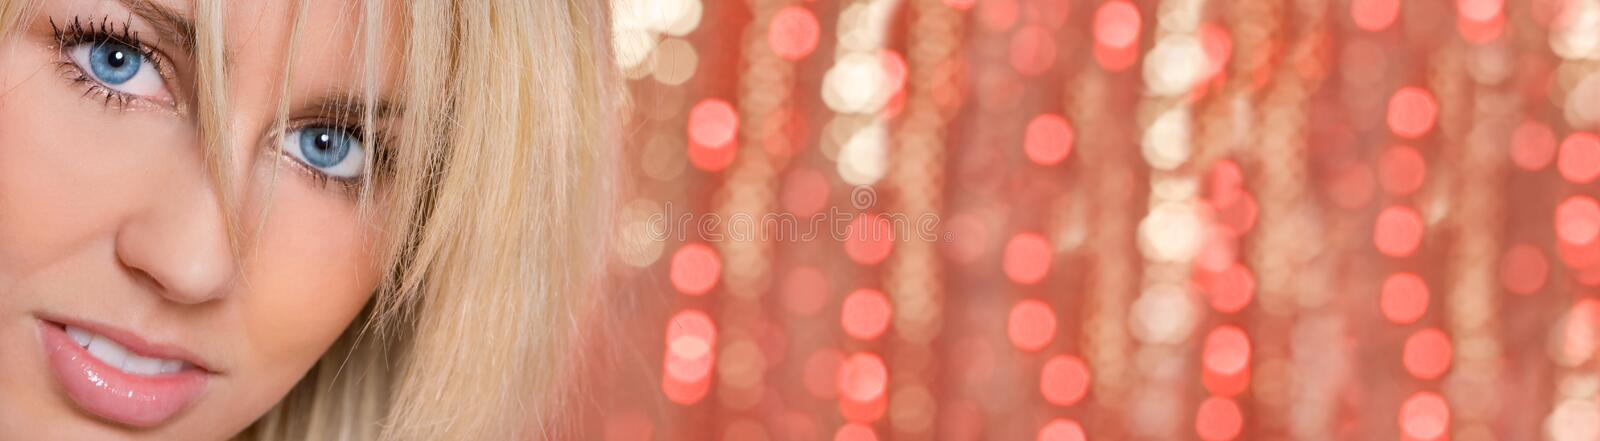 Woman Girl Blue Eyes Bokeh Lights Background Panorama royalty free stock photography